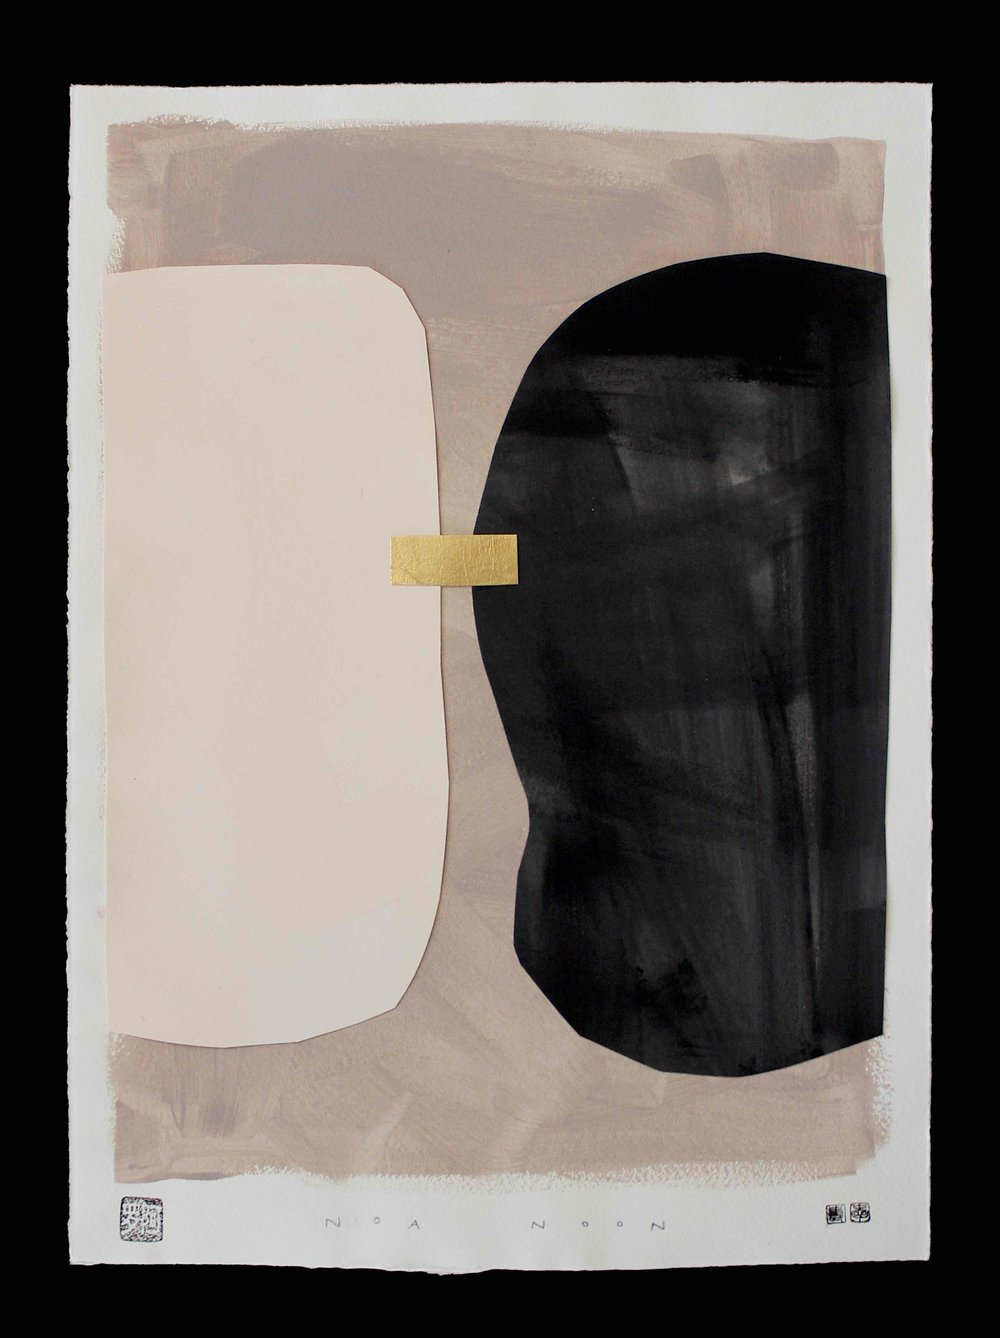 COLLAGE NO. 4 - 40 X 50 CM COLLAGE ON HANDMADE PAPER WITH GOLD LEAF AND HIMALAYA PINK AND BLACK PIGMENT PAINT.